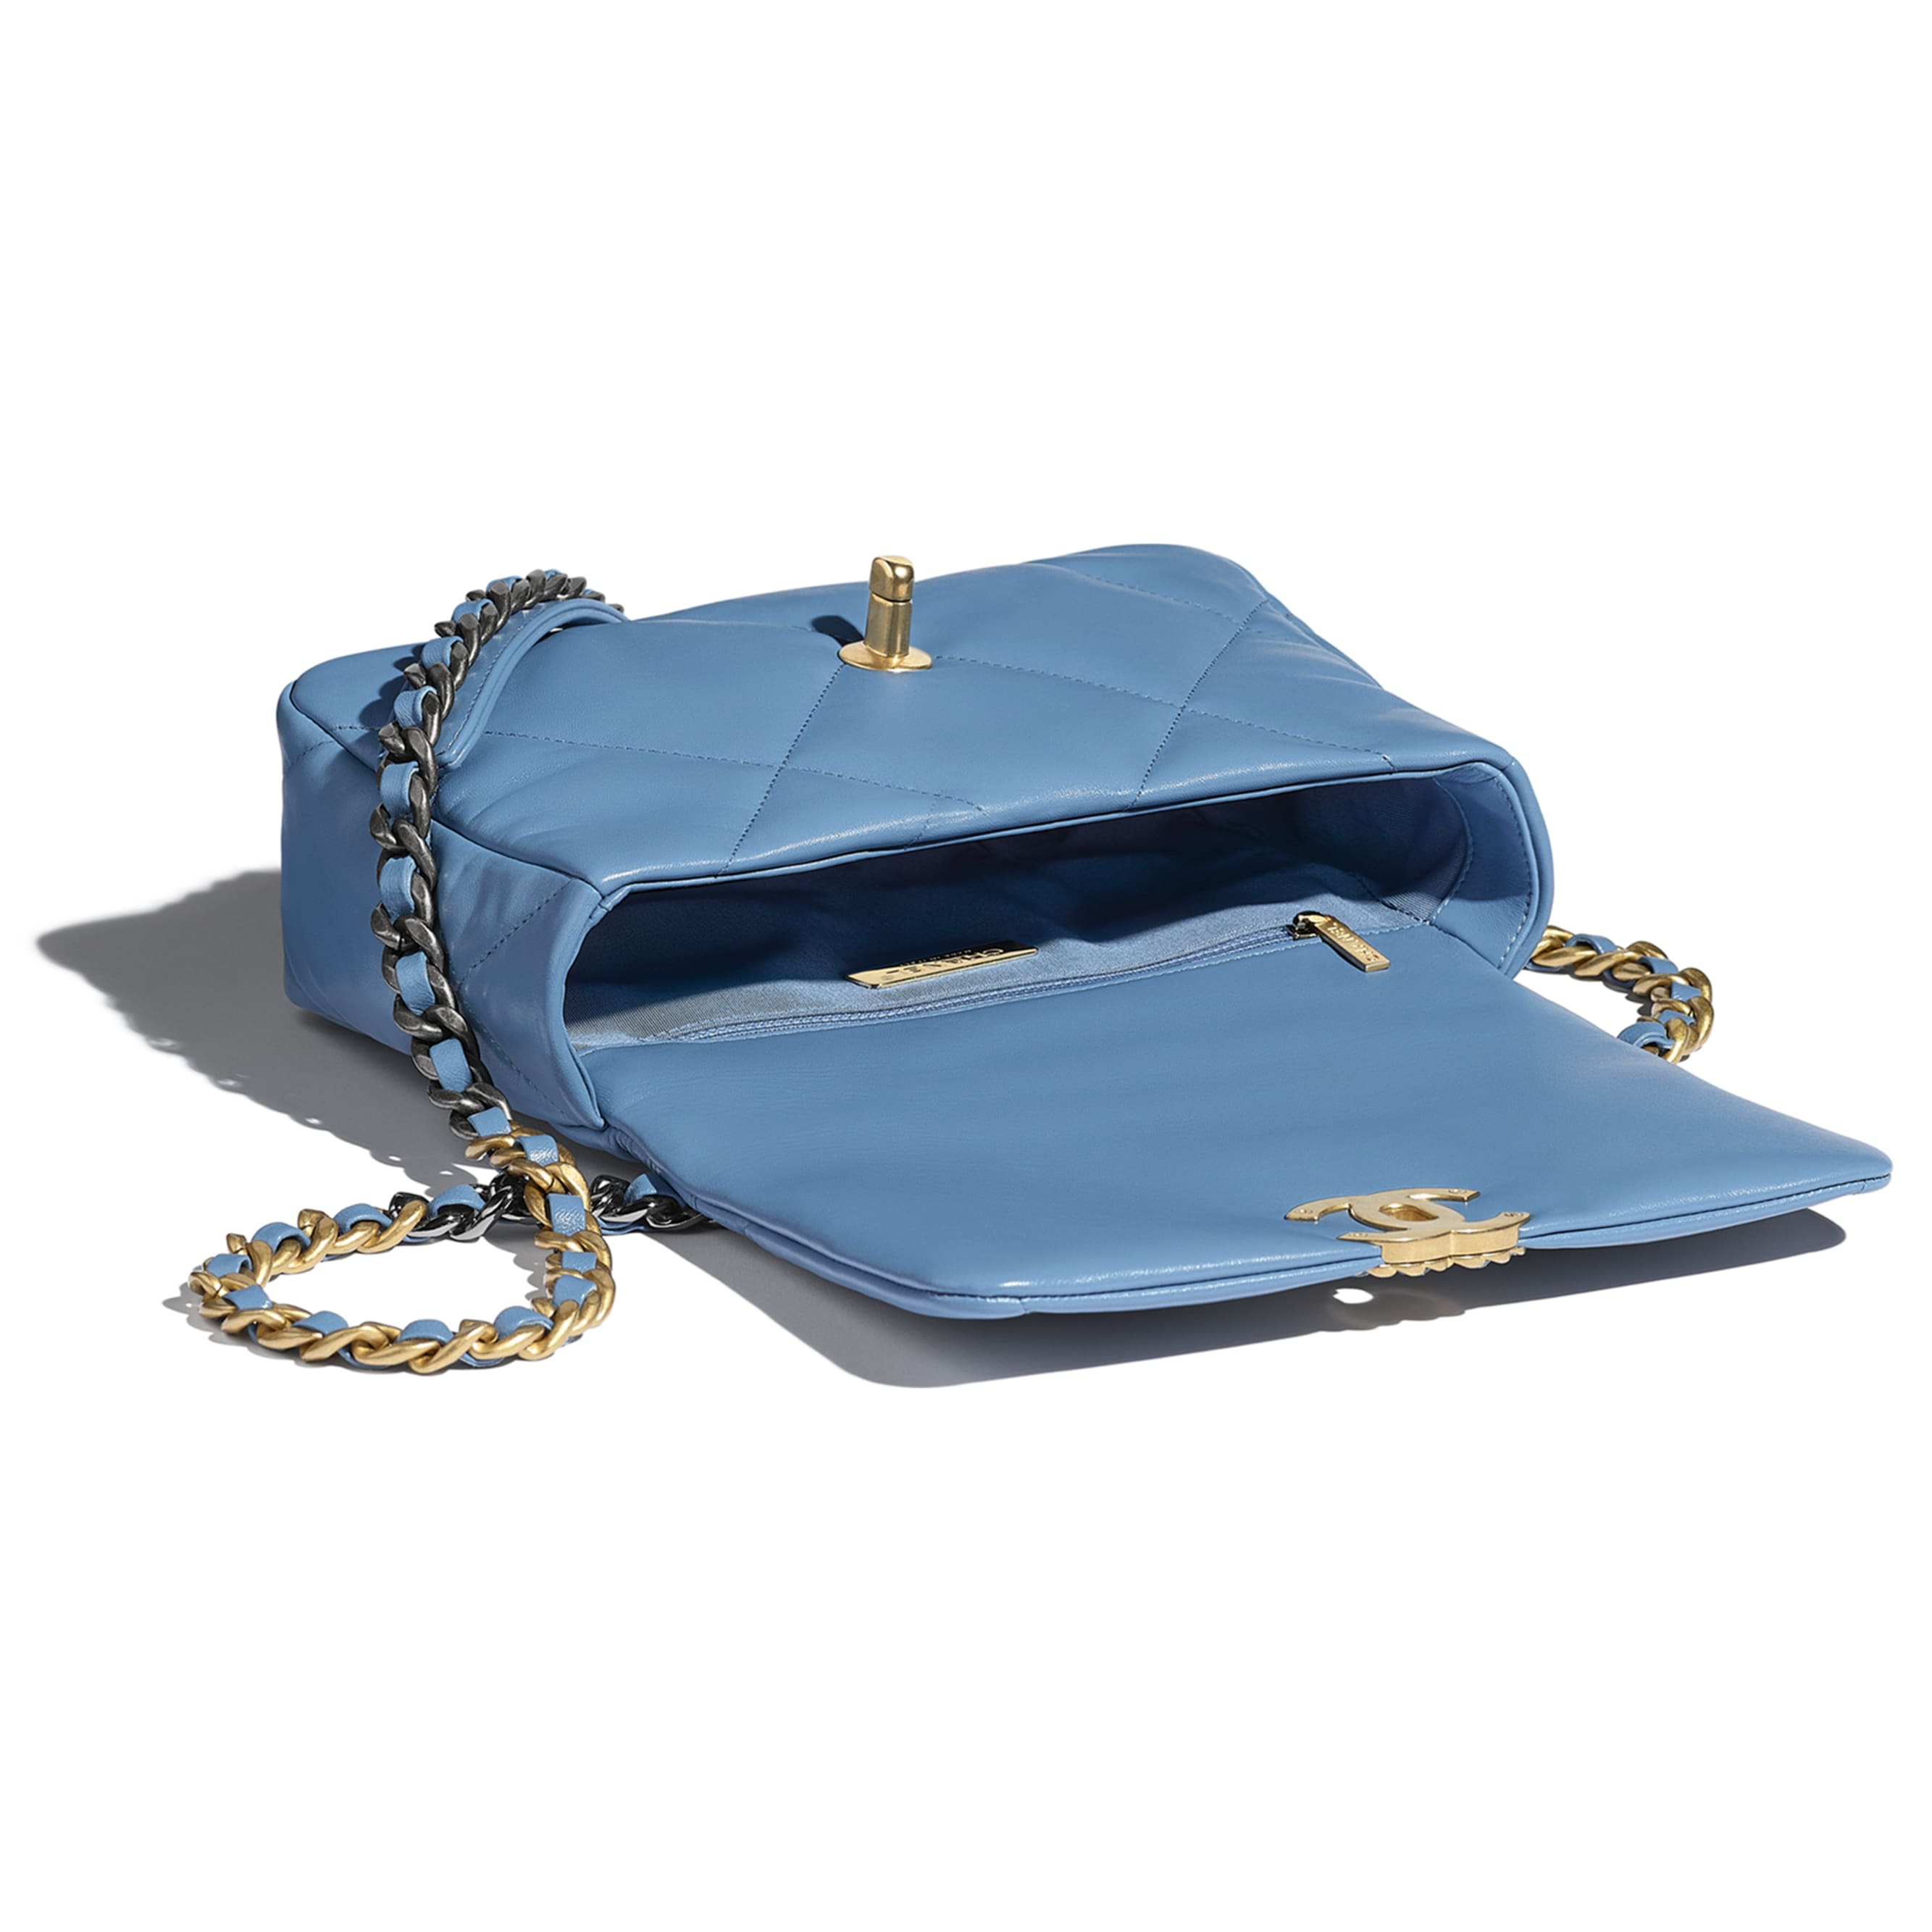 CHANEL 19 Handbag - Blue - Lambskin, Gold-Tone, Silver-Tone & Ruthenium-Finish Metal - CHANEL - Other view - see standard sized version